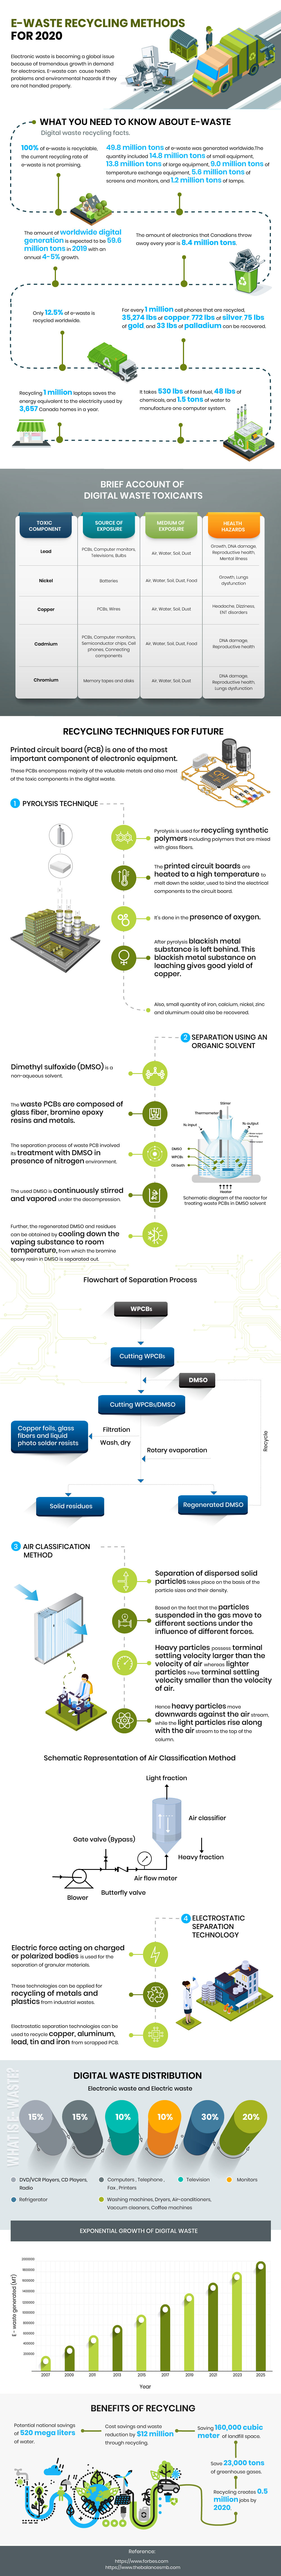 Infographic identifying future e-waste recycling methods.